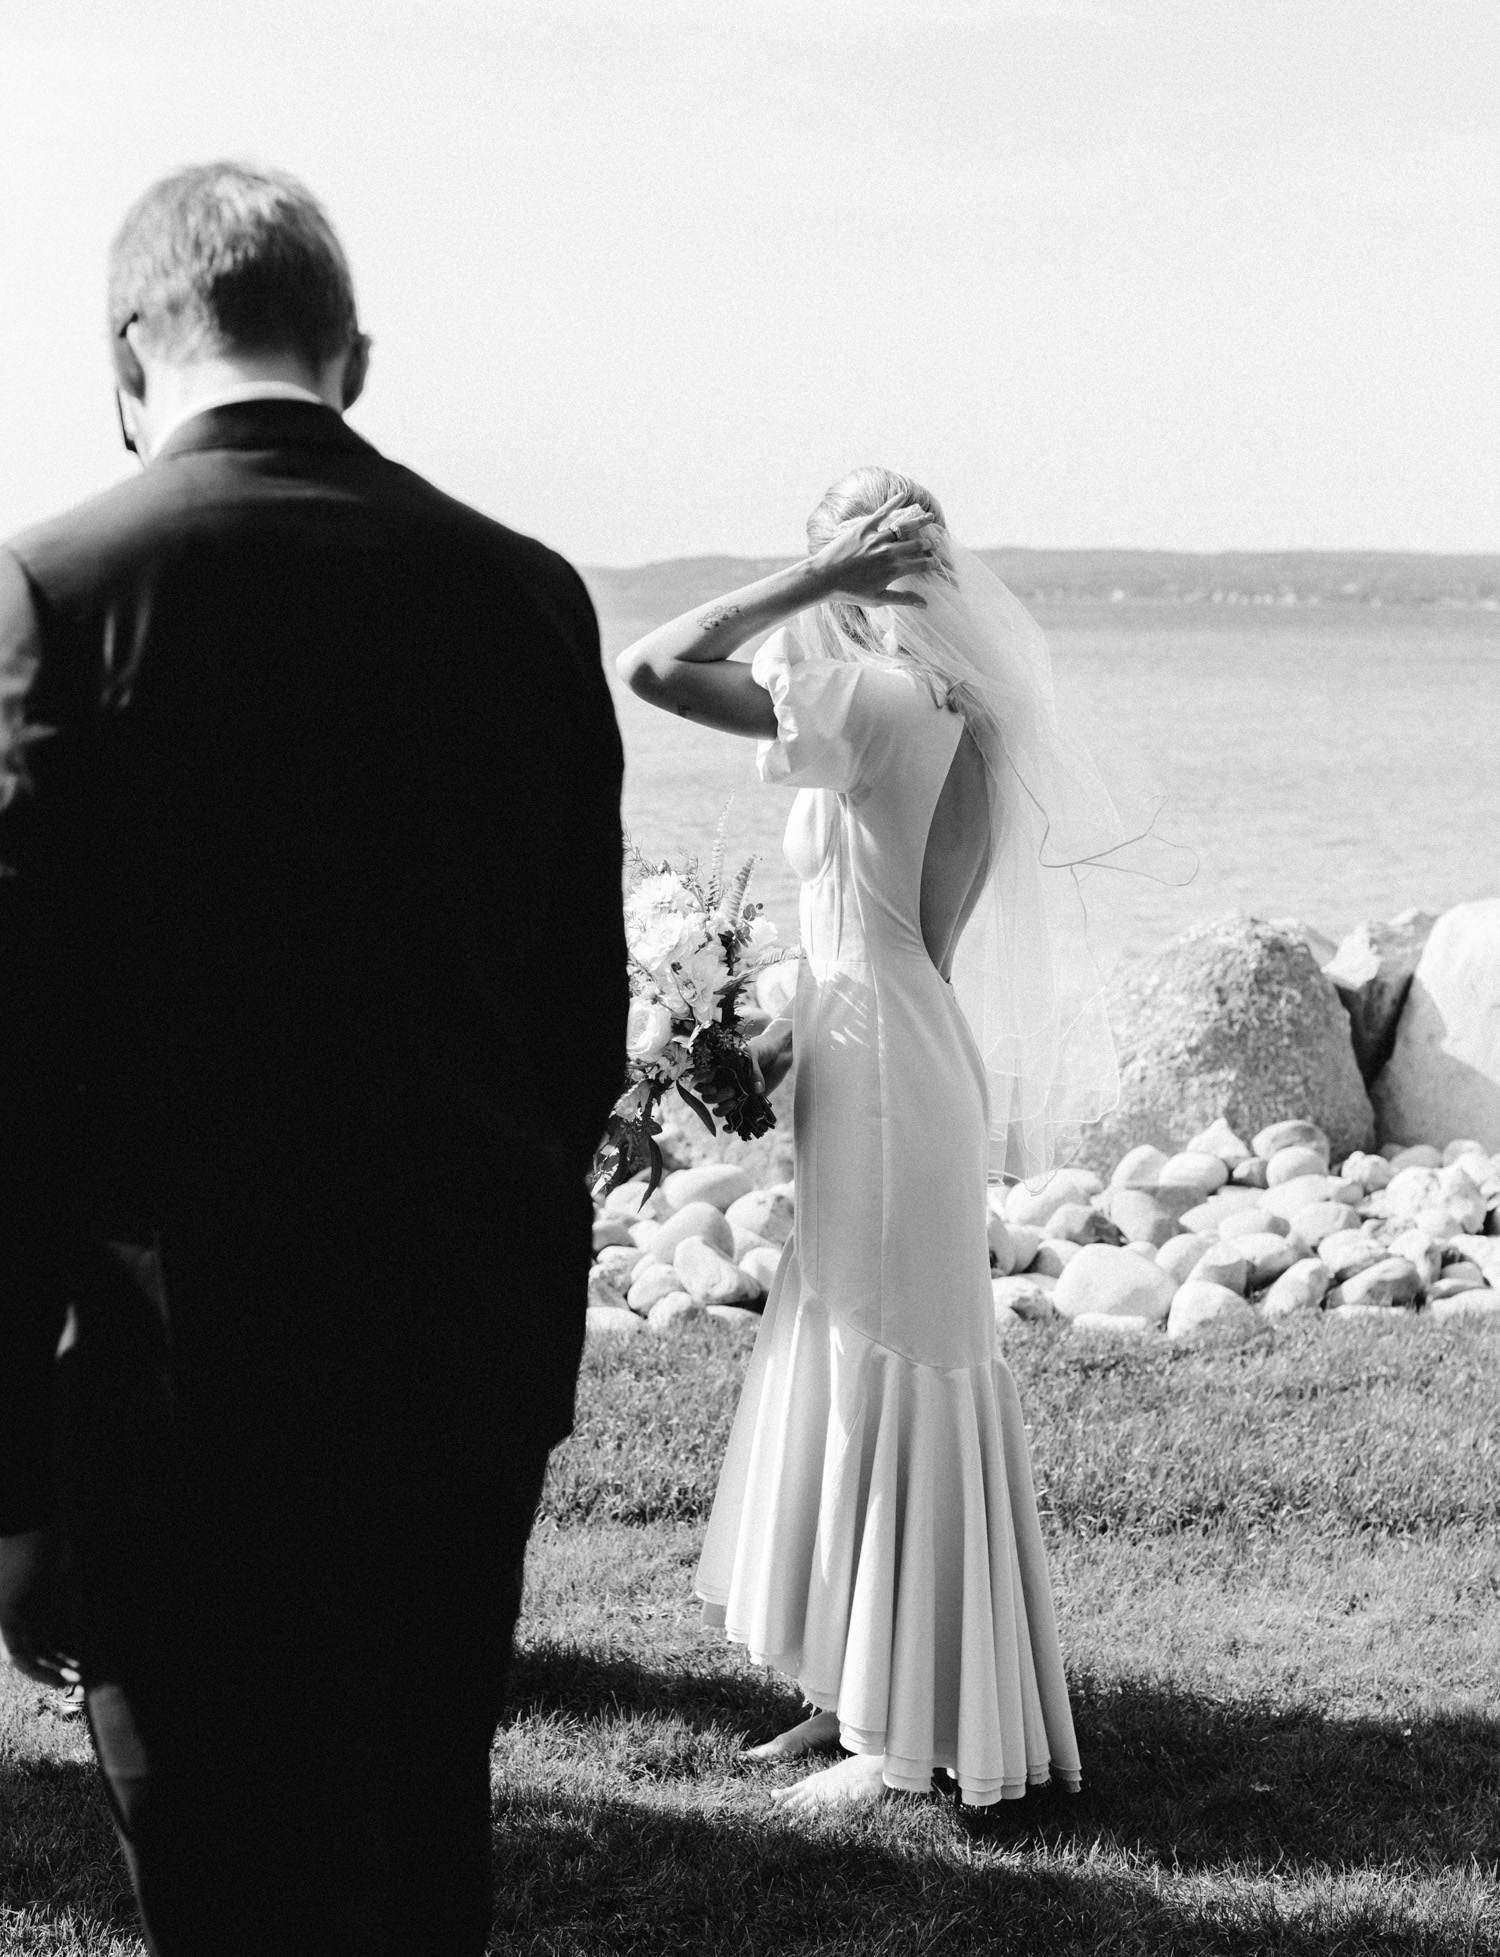 A bride in a vintage inspired gown adjusts her veil during her Lake Michigan wedding in Petoskey